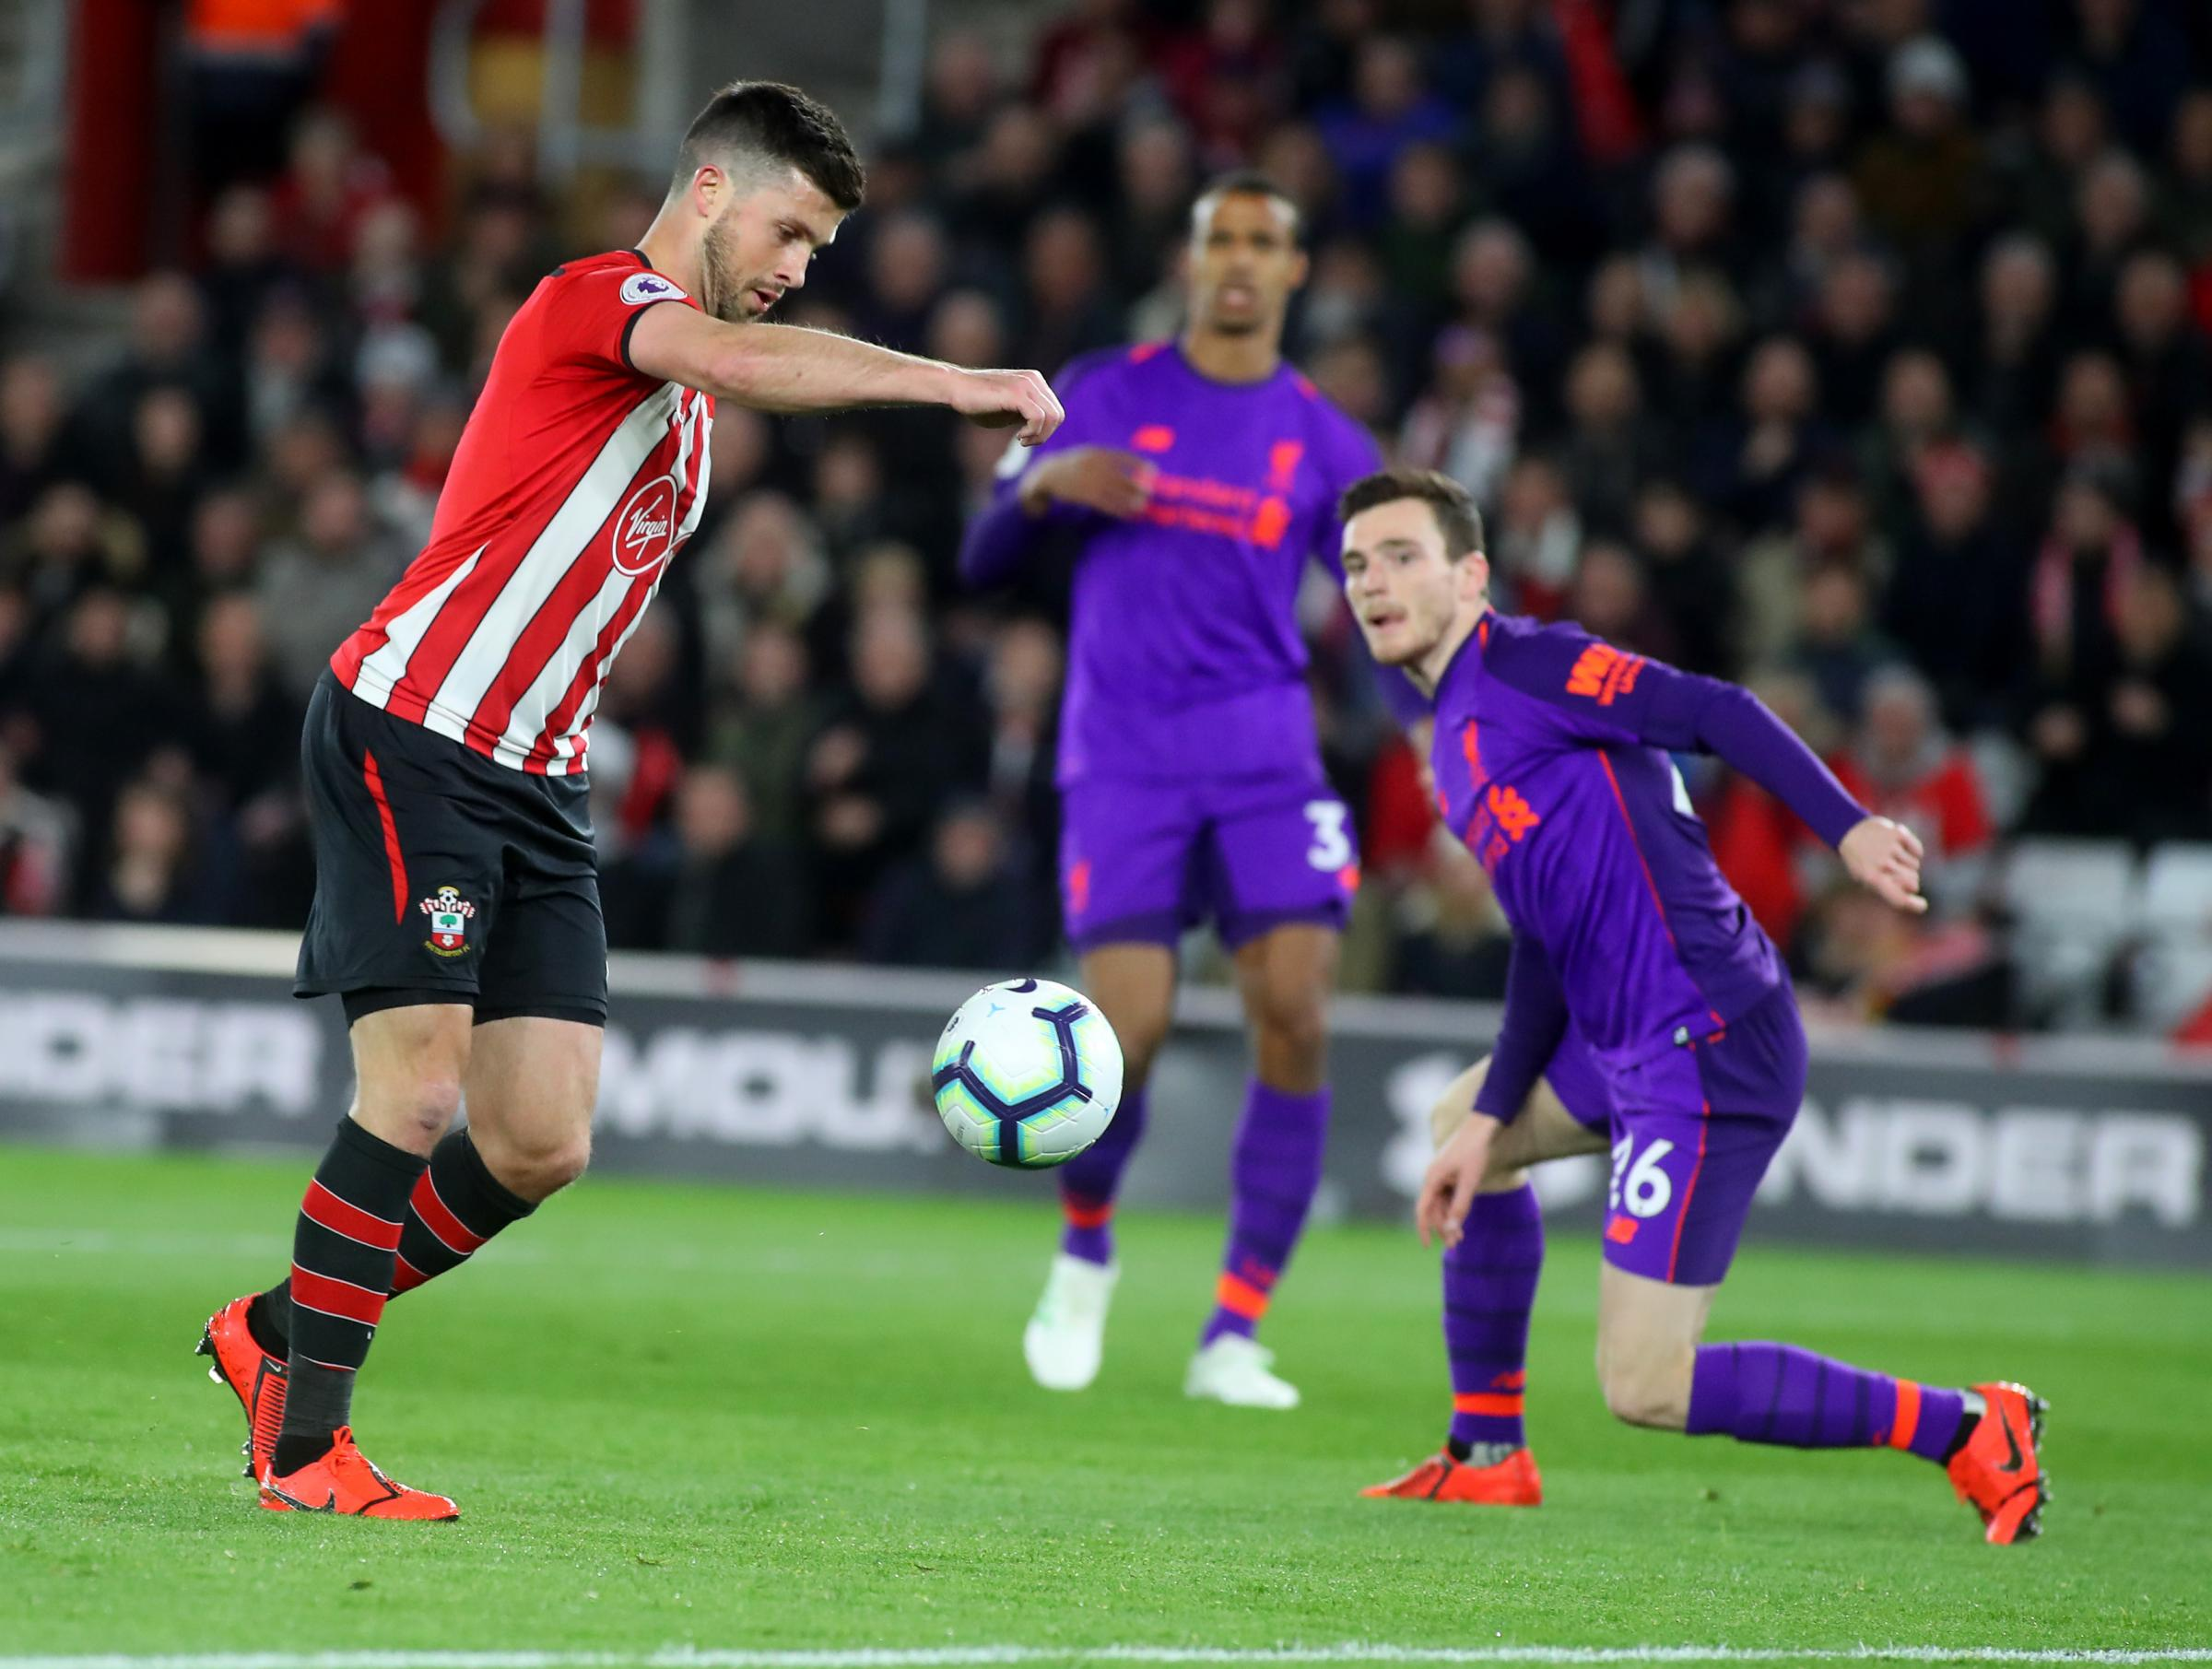 Shane Long scored his second goal of the season against Liverpool